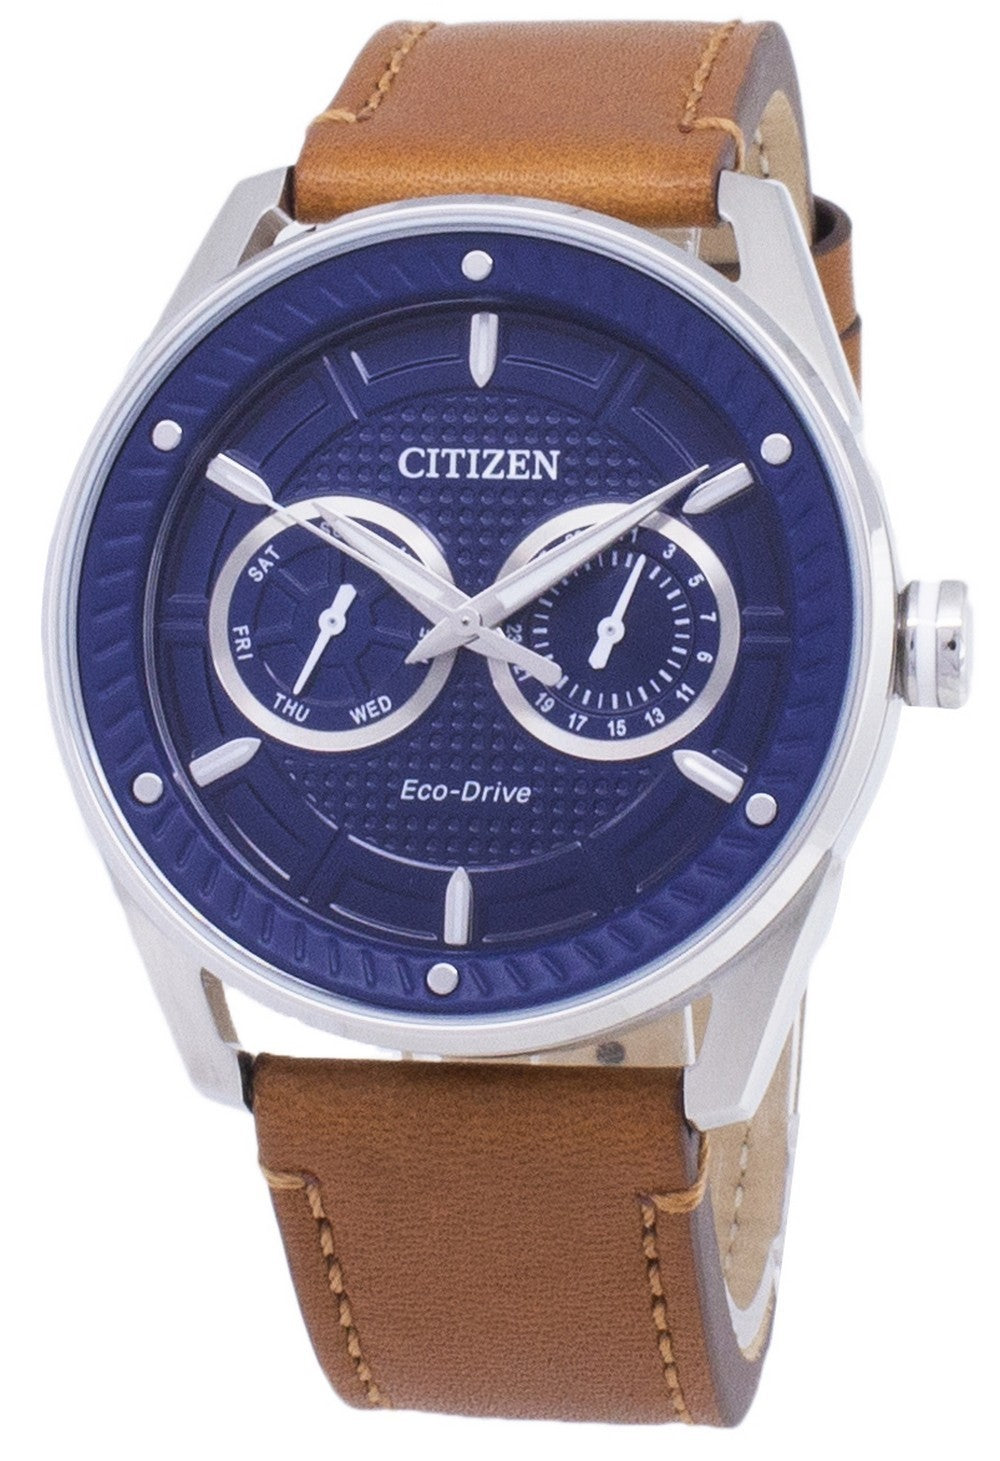 Citizen Eco-drive Bu4021-17l Power Reserve Analog Men's Watch